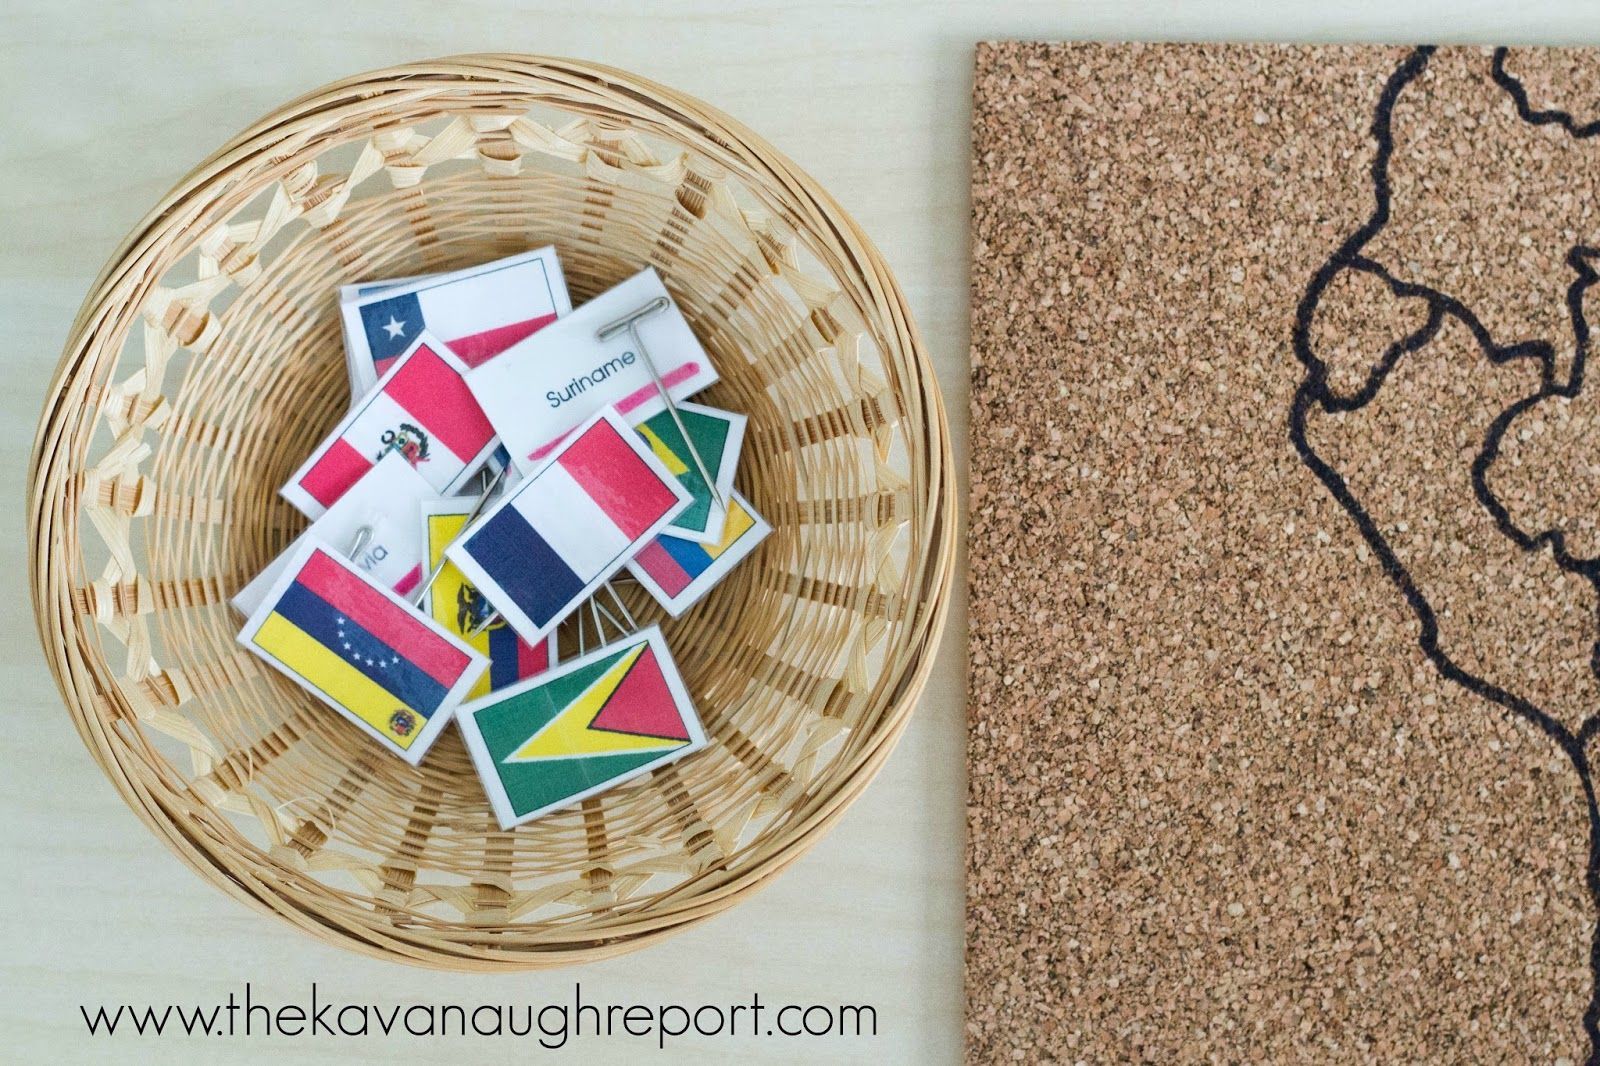 A Diy Montessori Flag Pin Map Is A Great Way To Explore